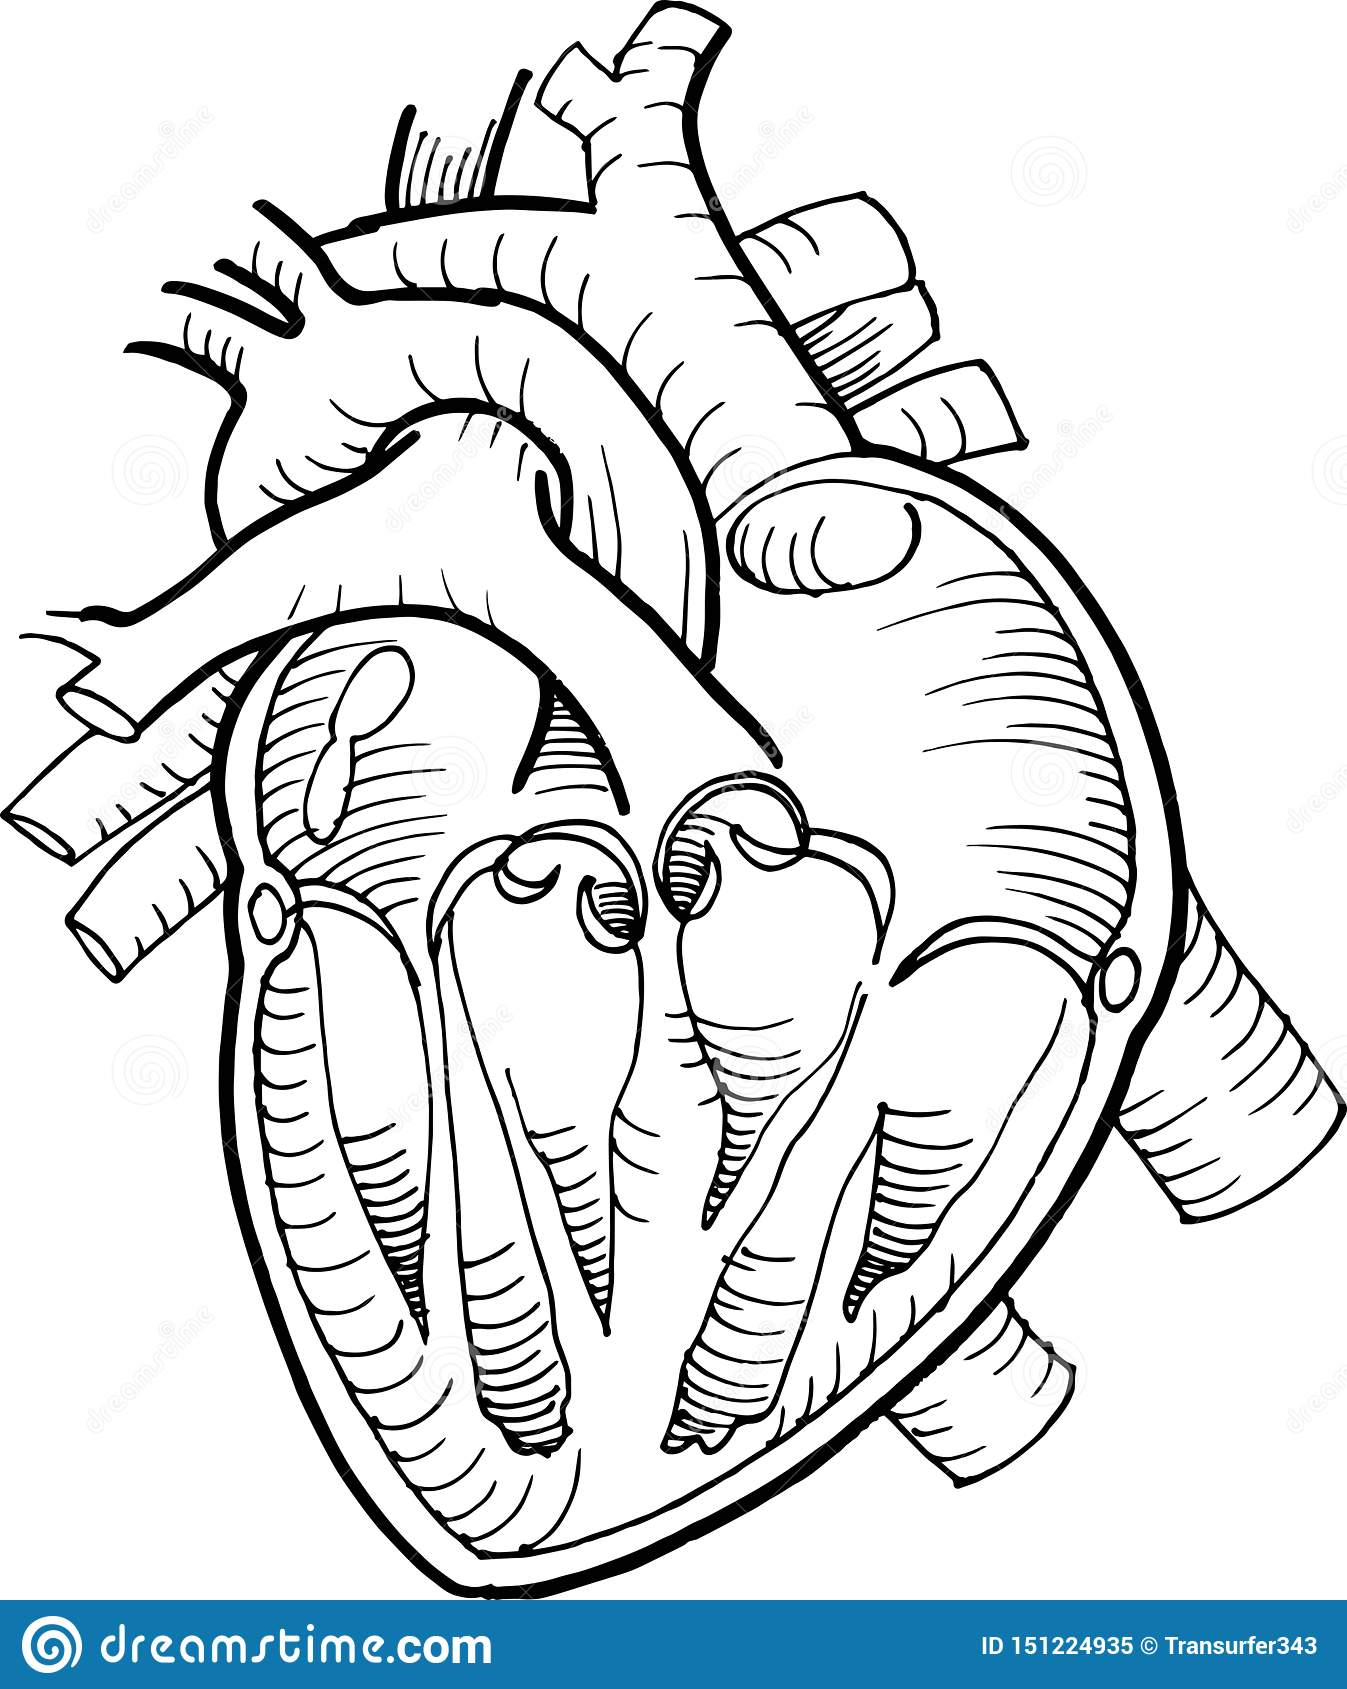 Anatomical human heart drawing with black pencil line stock